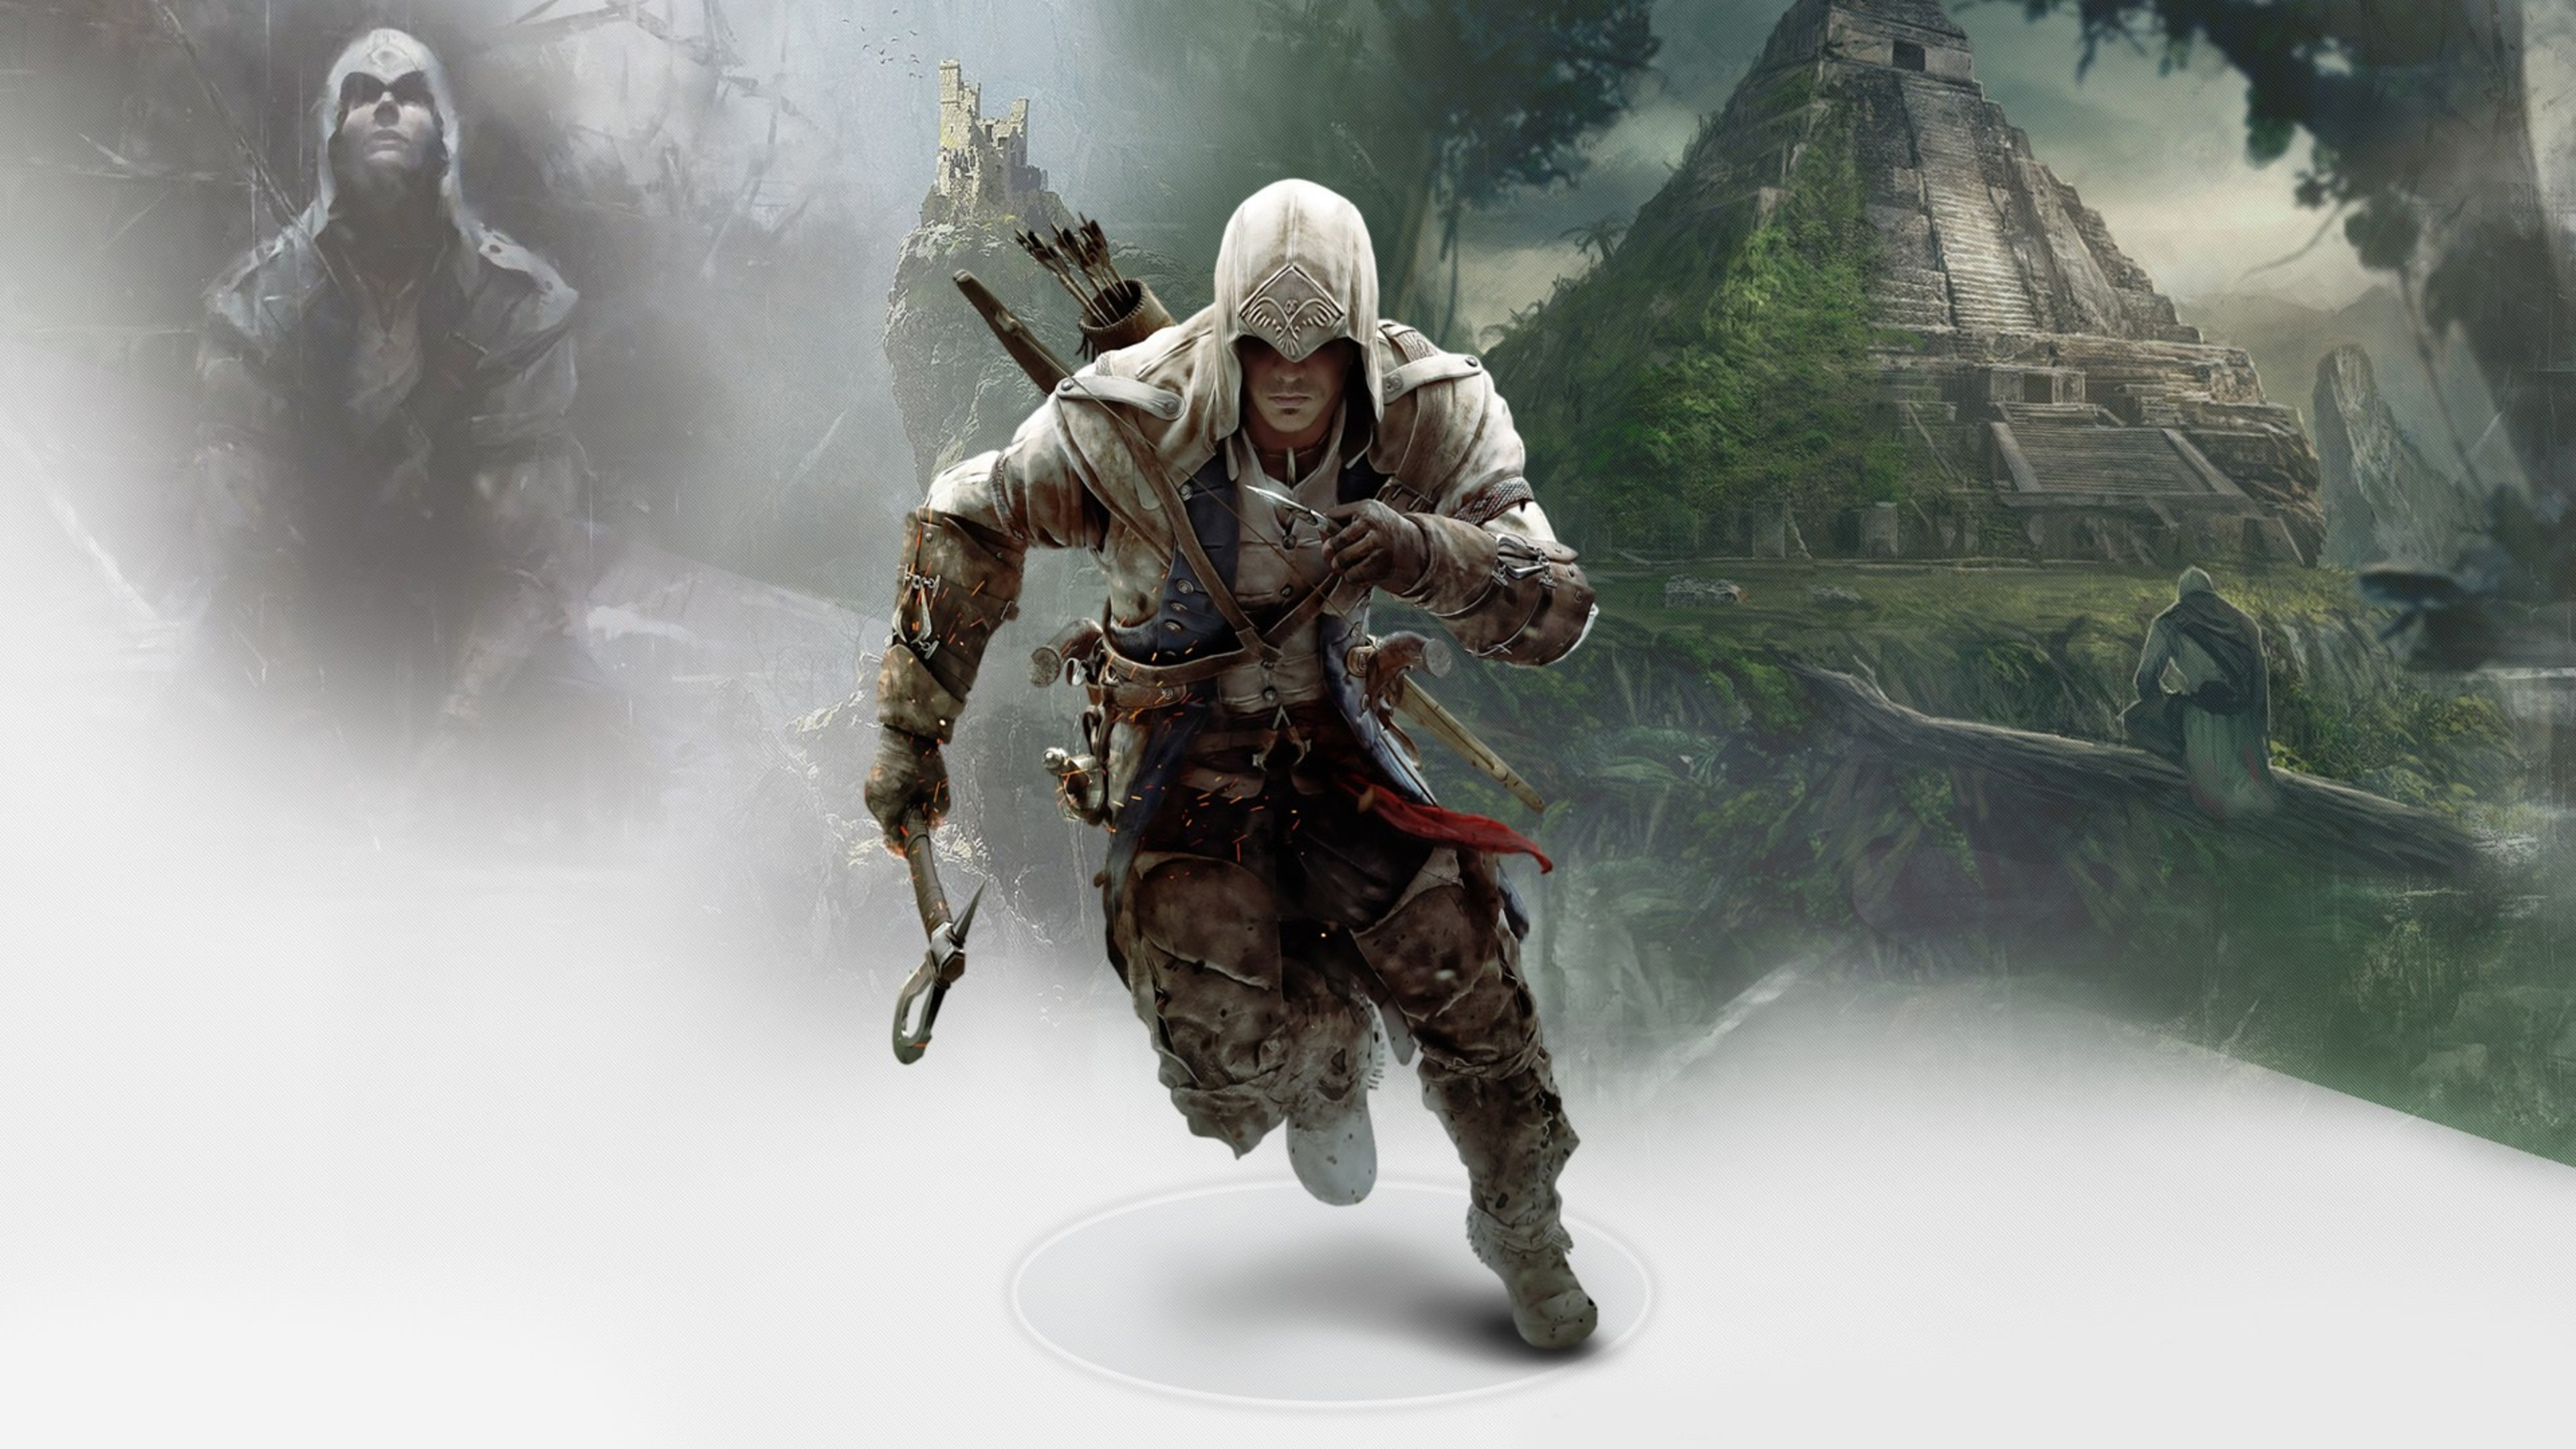 Connor In Assassins Creed 3 Hd Games 4k Wallpapers Images